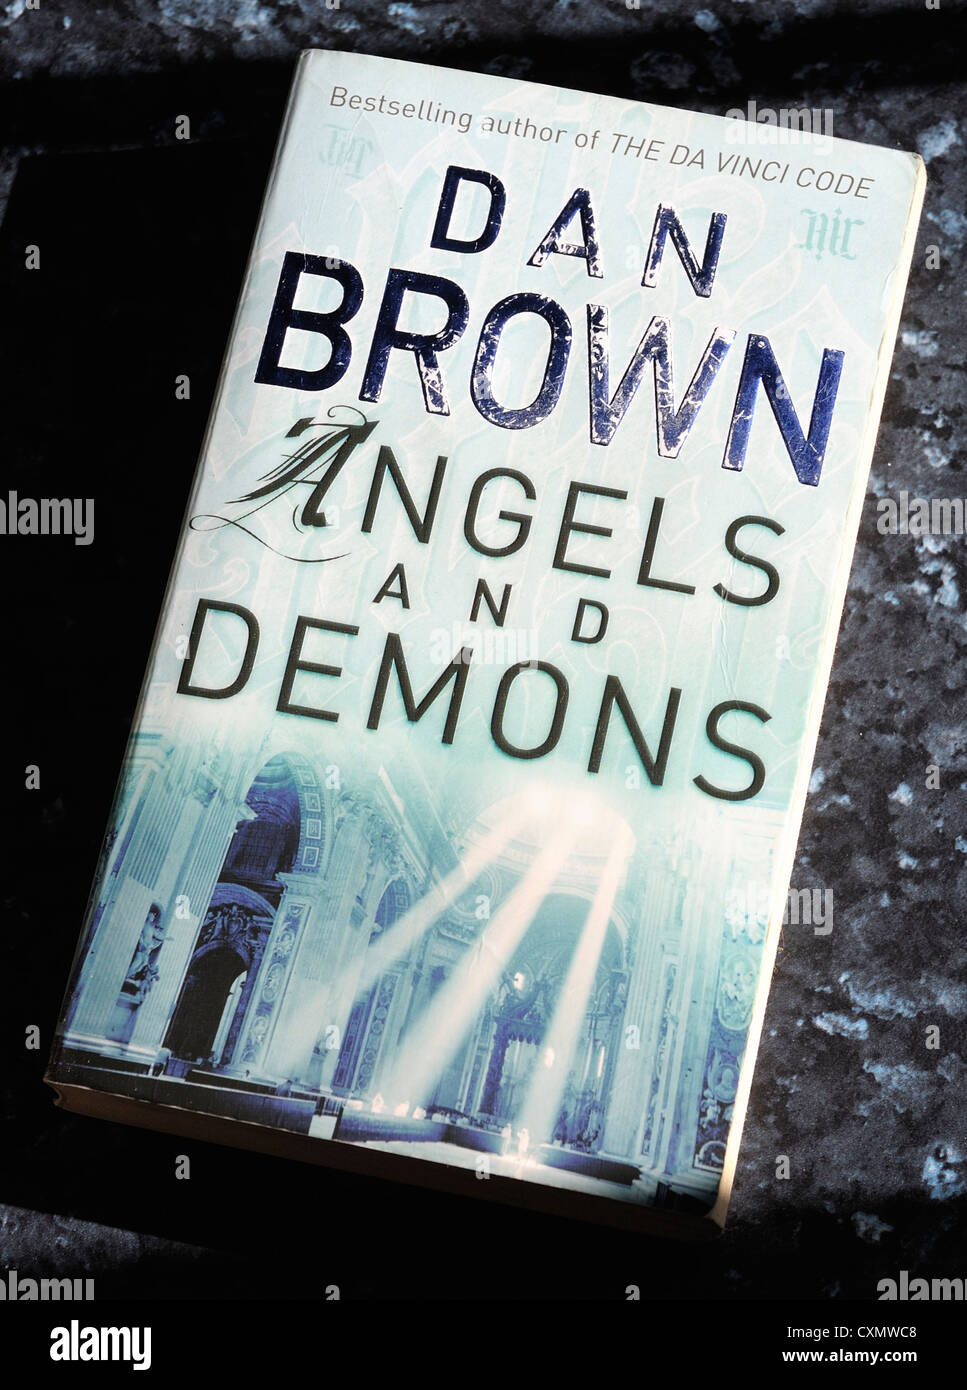 dan brown angels and demons book cover - Stock Image